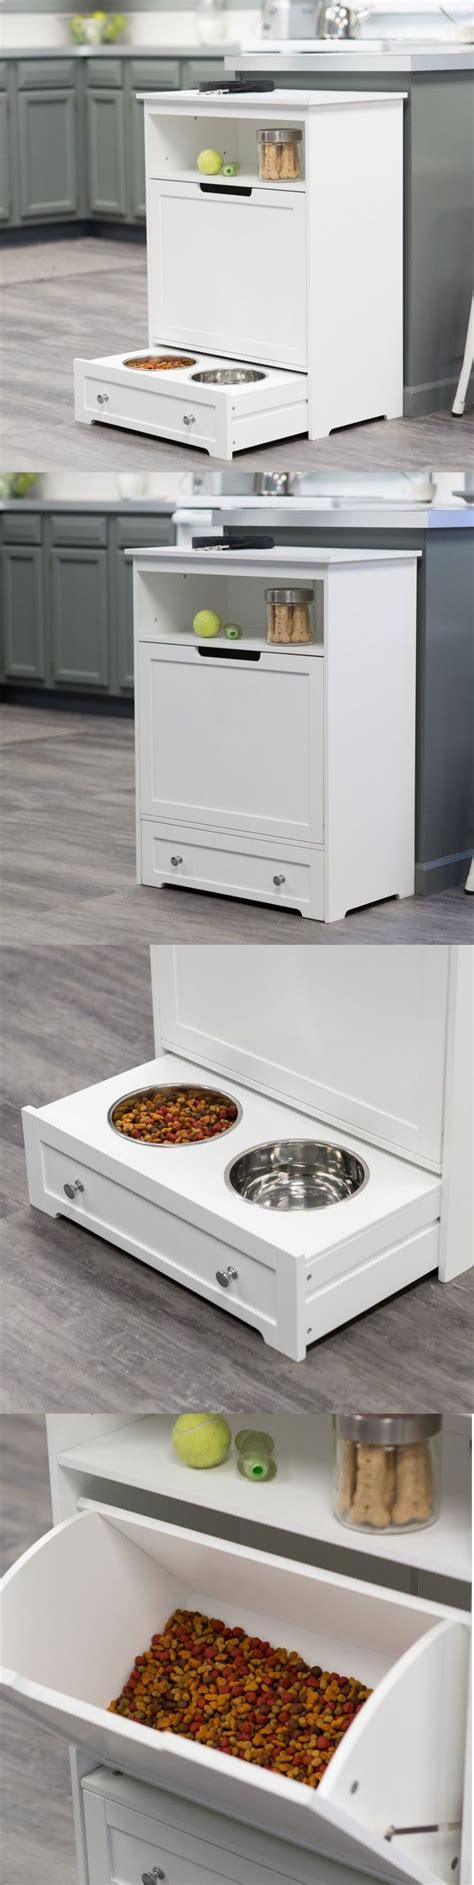 mais cuisine pet food storage cabinet with bowls slide in drawer hooks